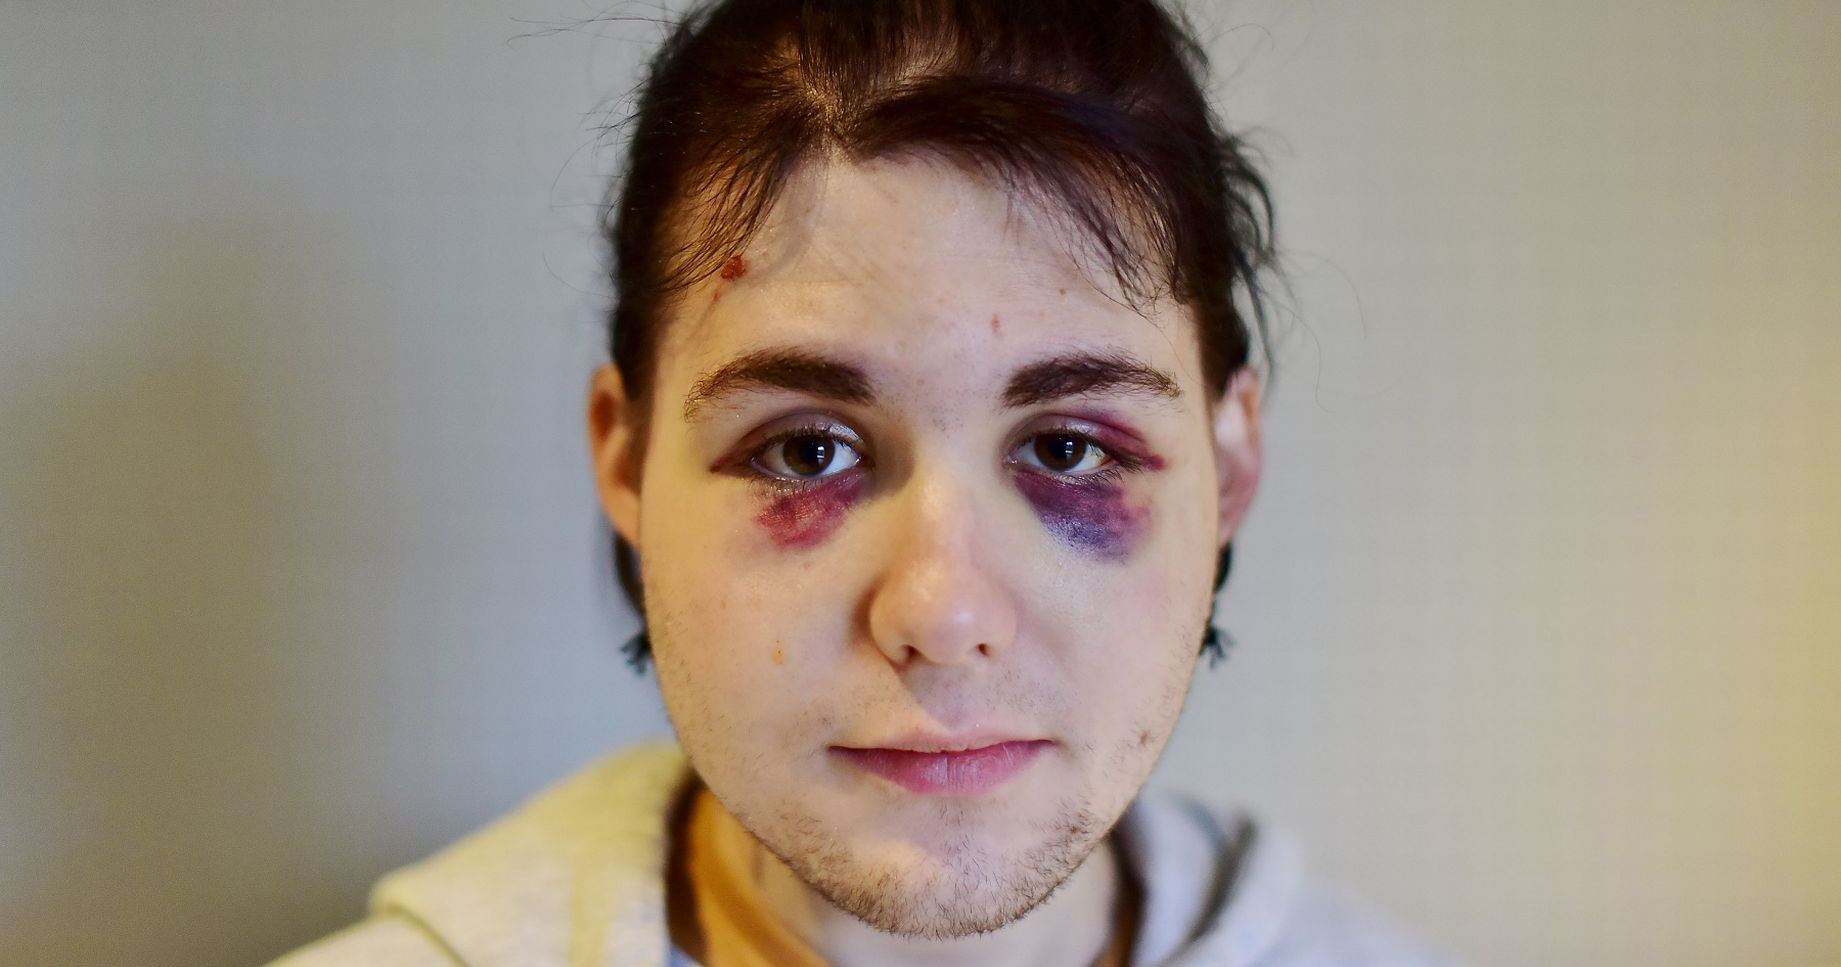 A bruised Kydis Zellinger whose homophobic attacker was jailed